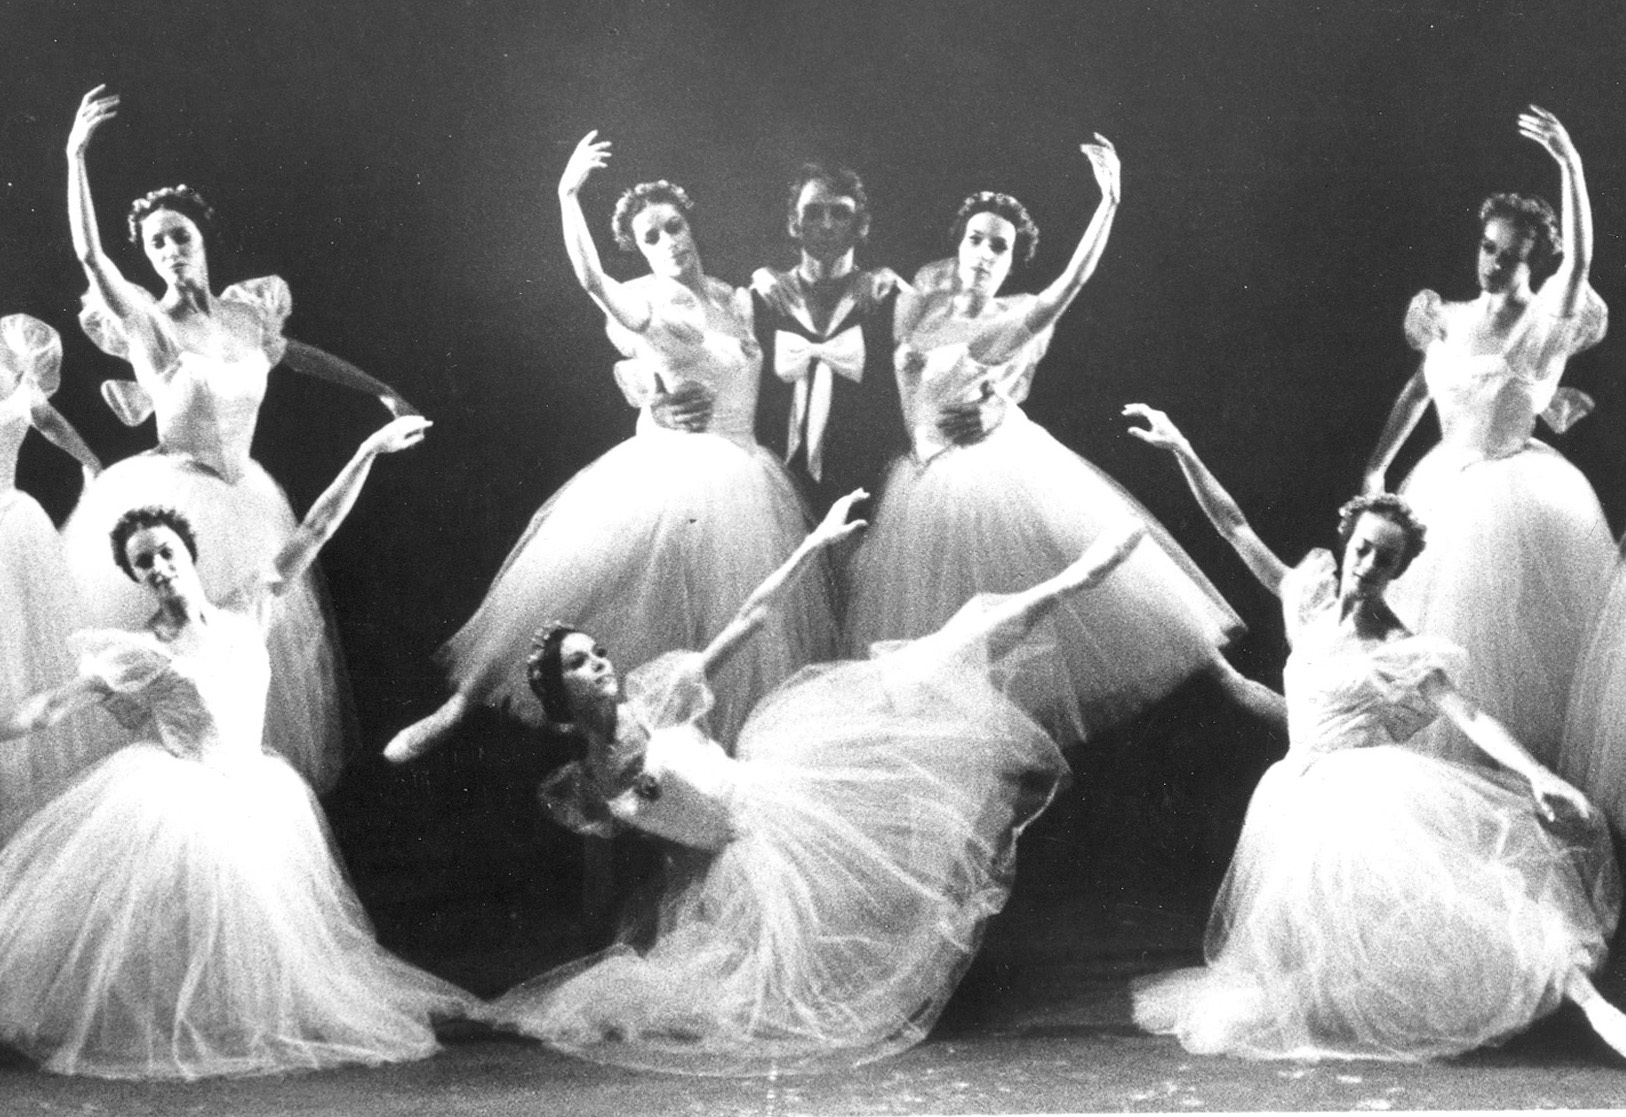 Ivan Nagy, Eleanor D'Antuono, Ellen Everett and Karena Brock in Les Sylphides